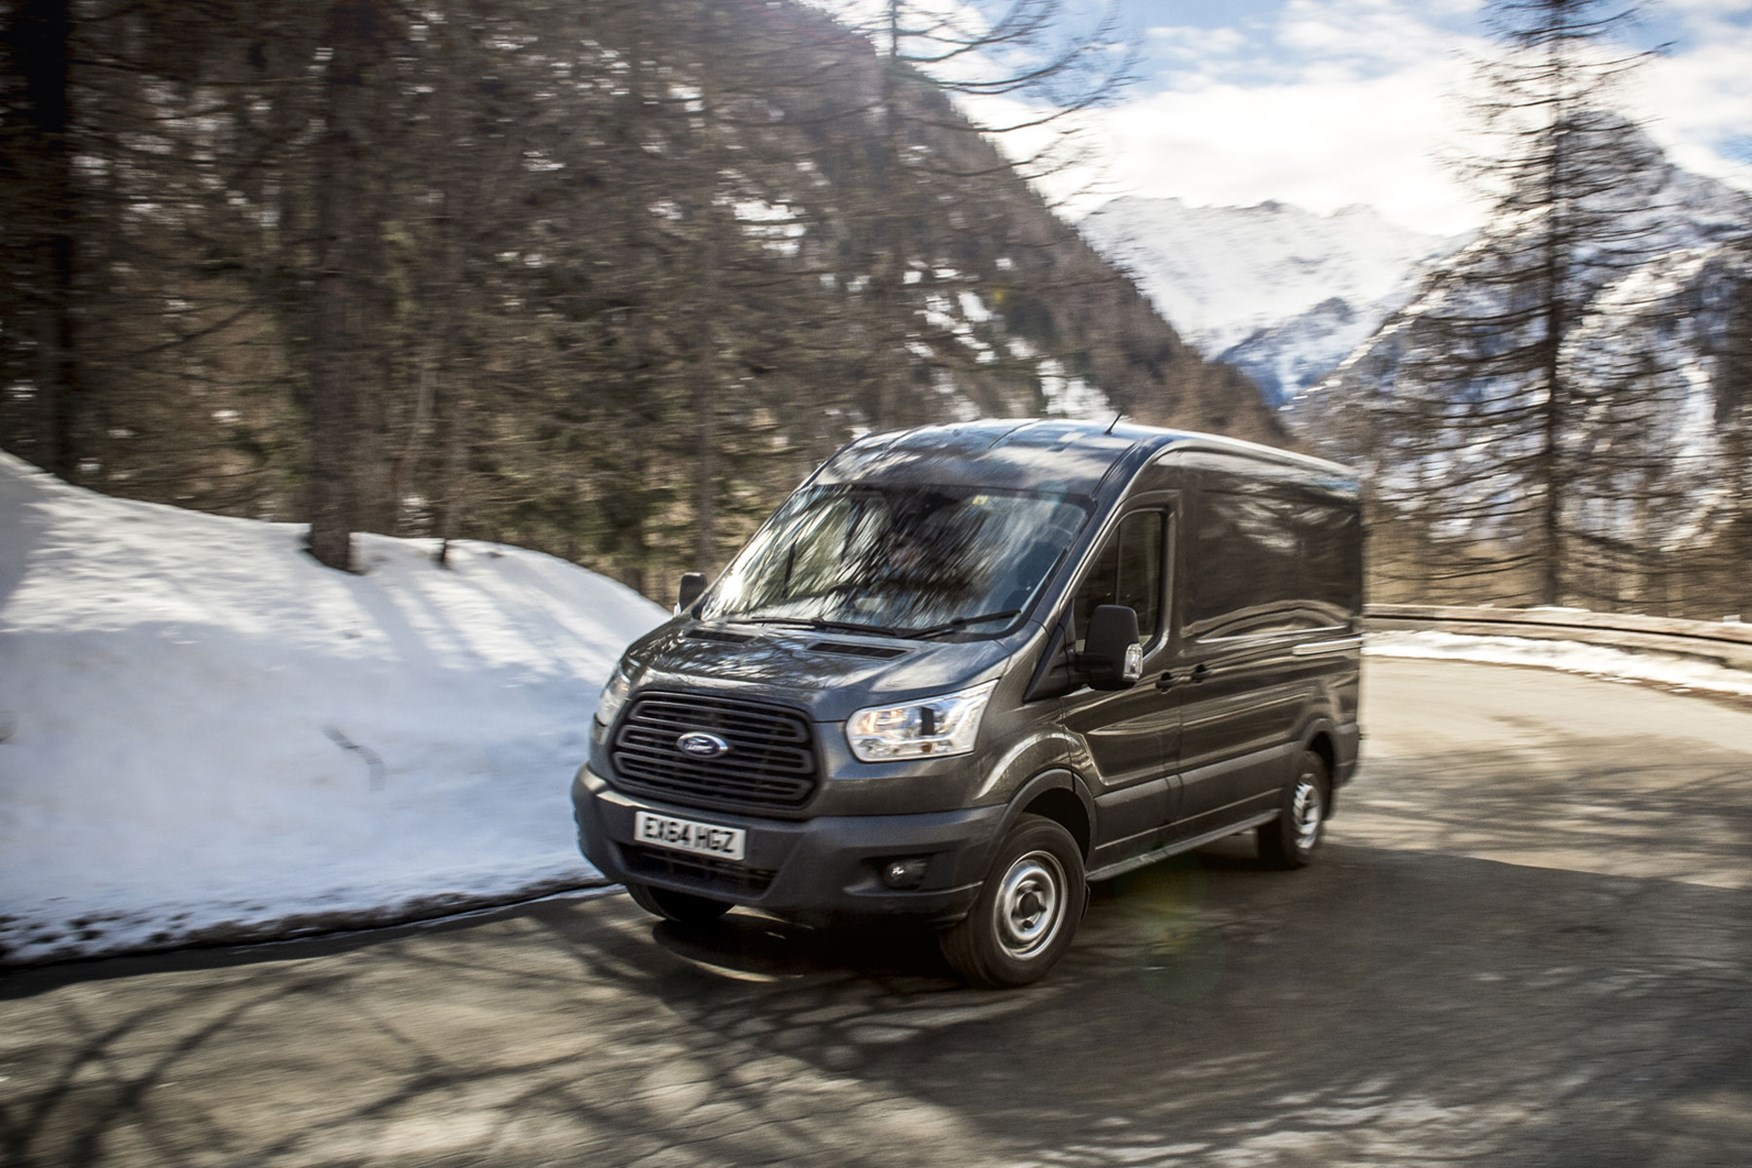 hight resolution of ford transit awd review front view driving on mountain road